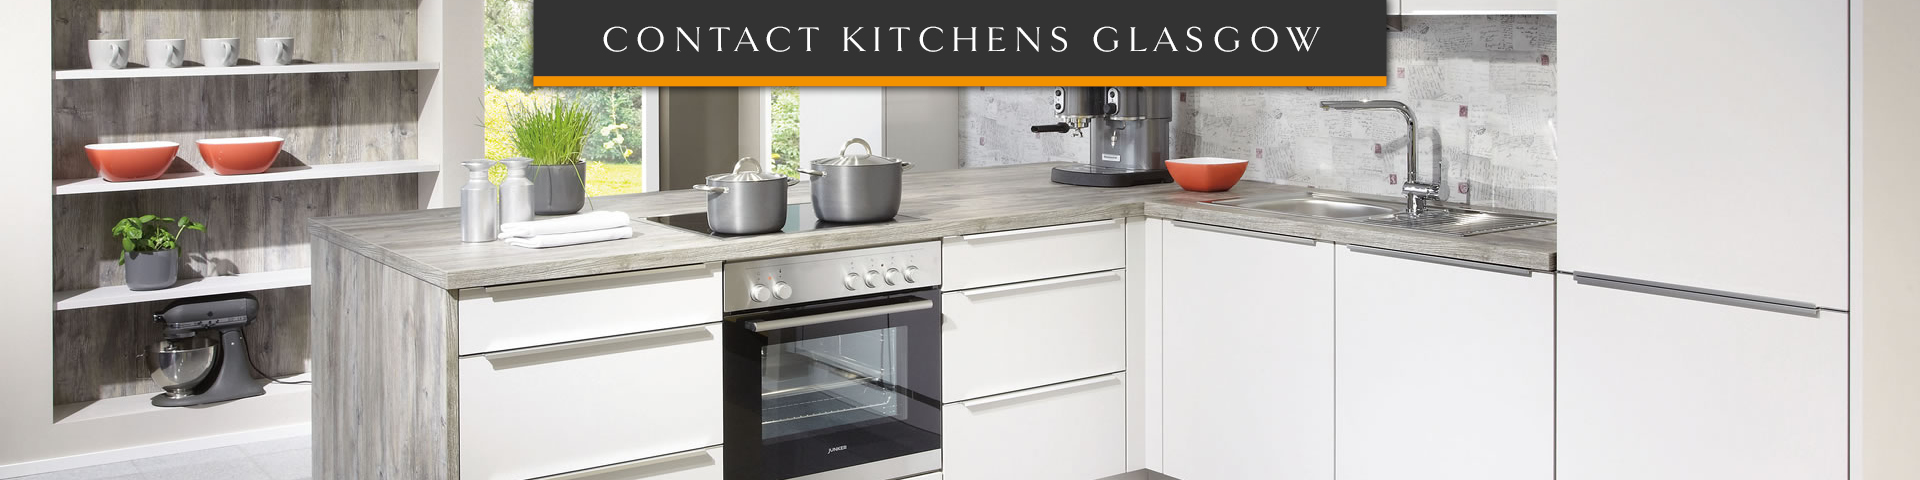 Contact Kitchens Glasgow